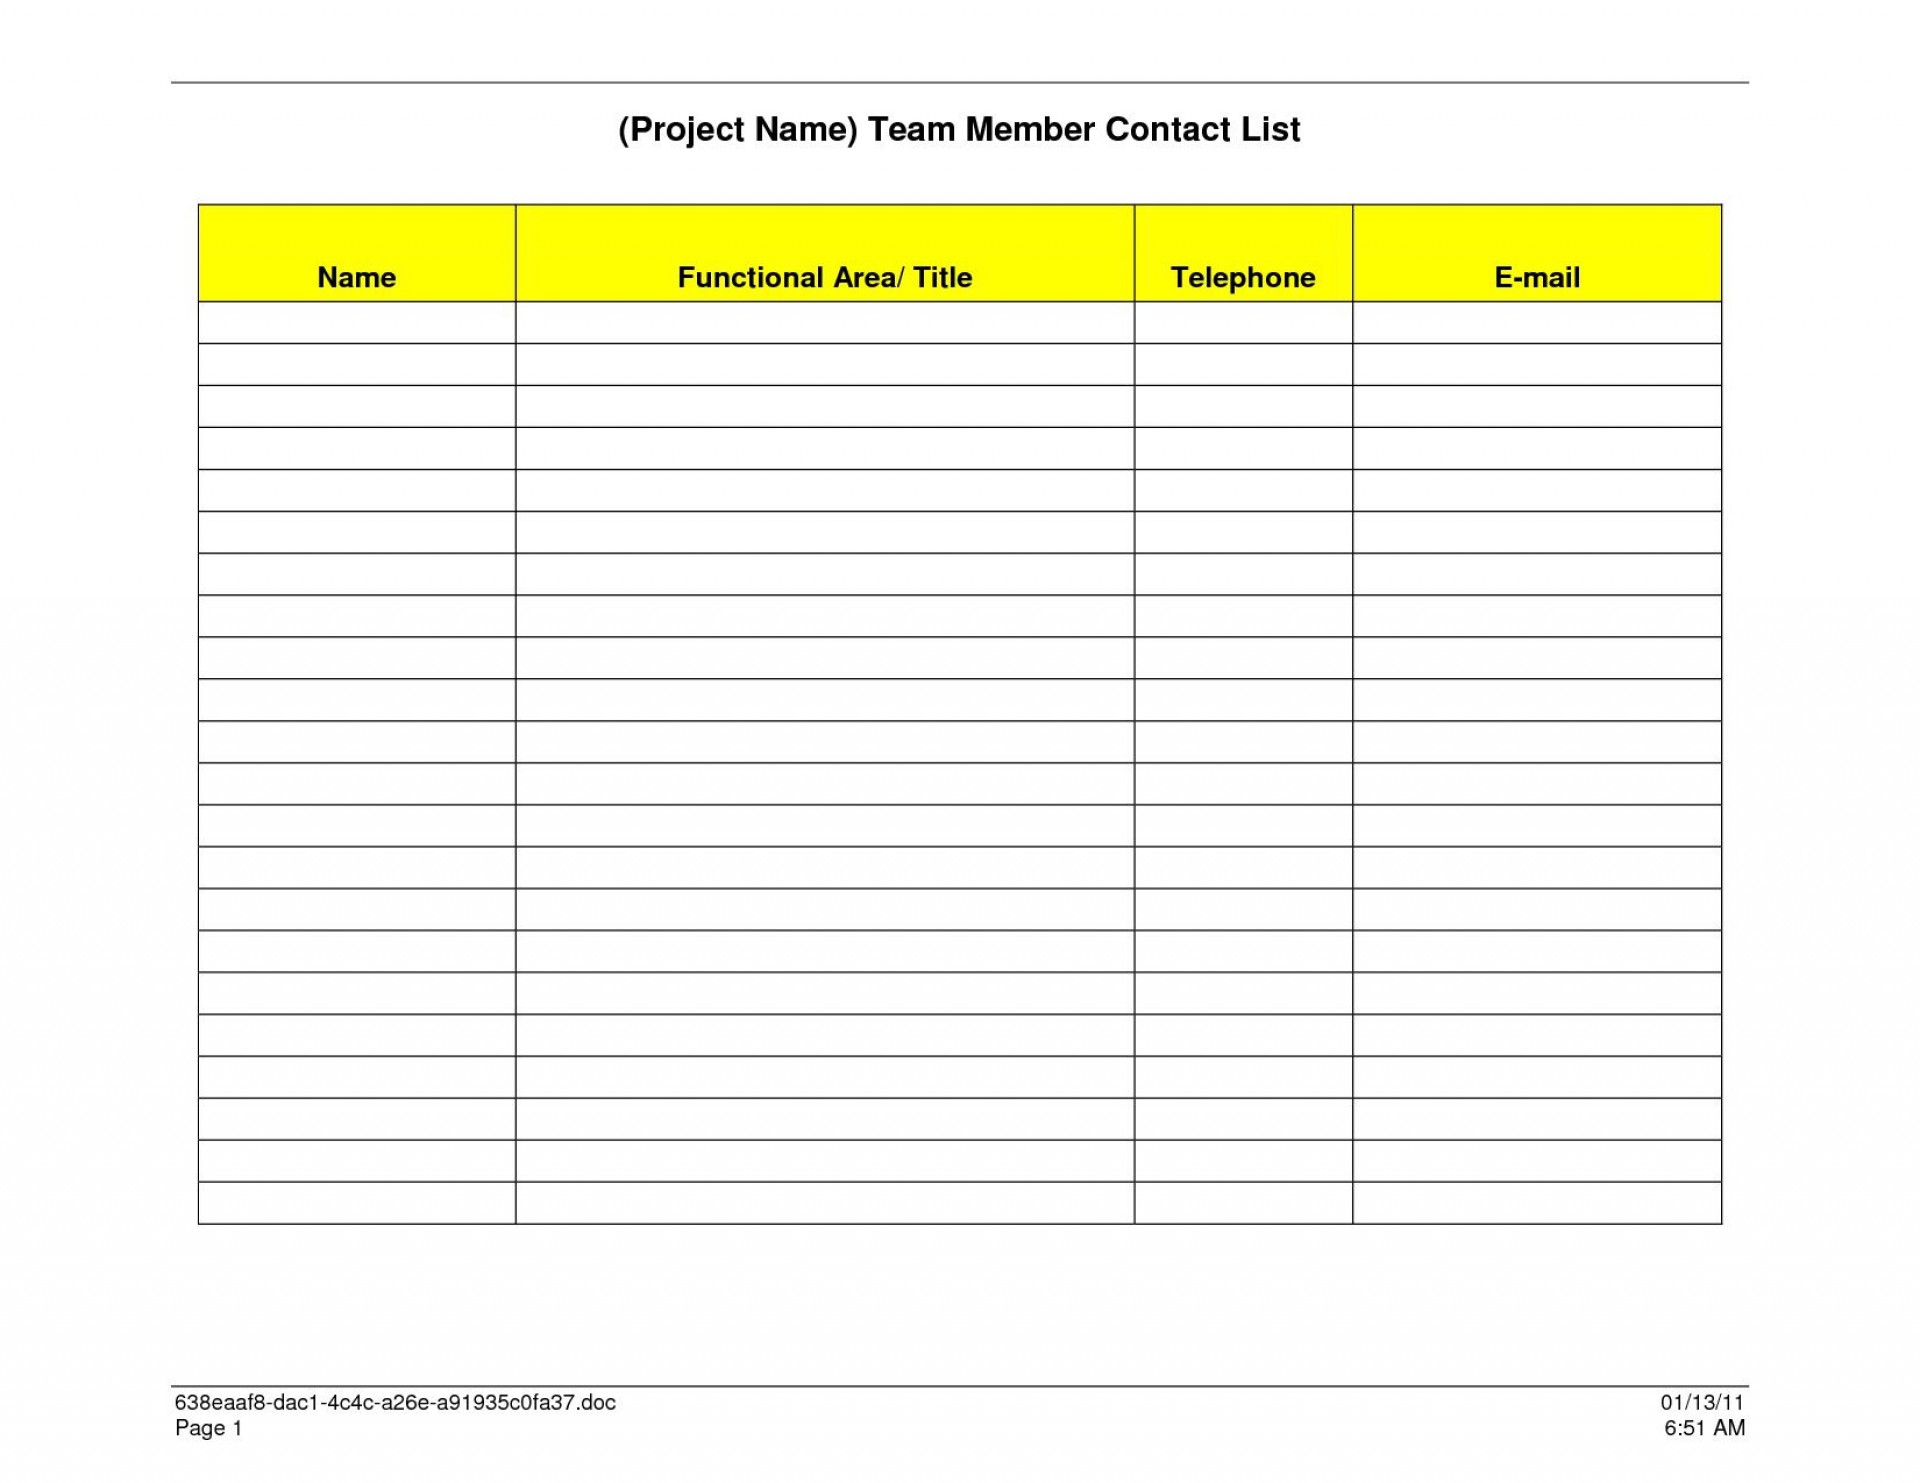 000 Awful Excel Contact List Template Example  Phone Download Spreadsheet Telephone1920